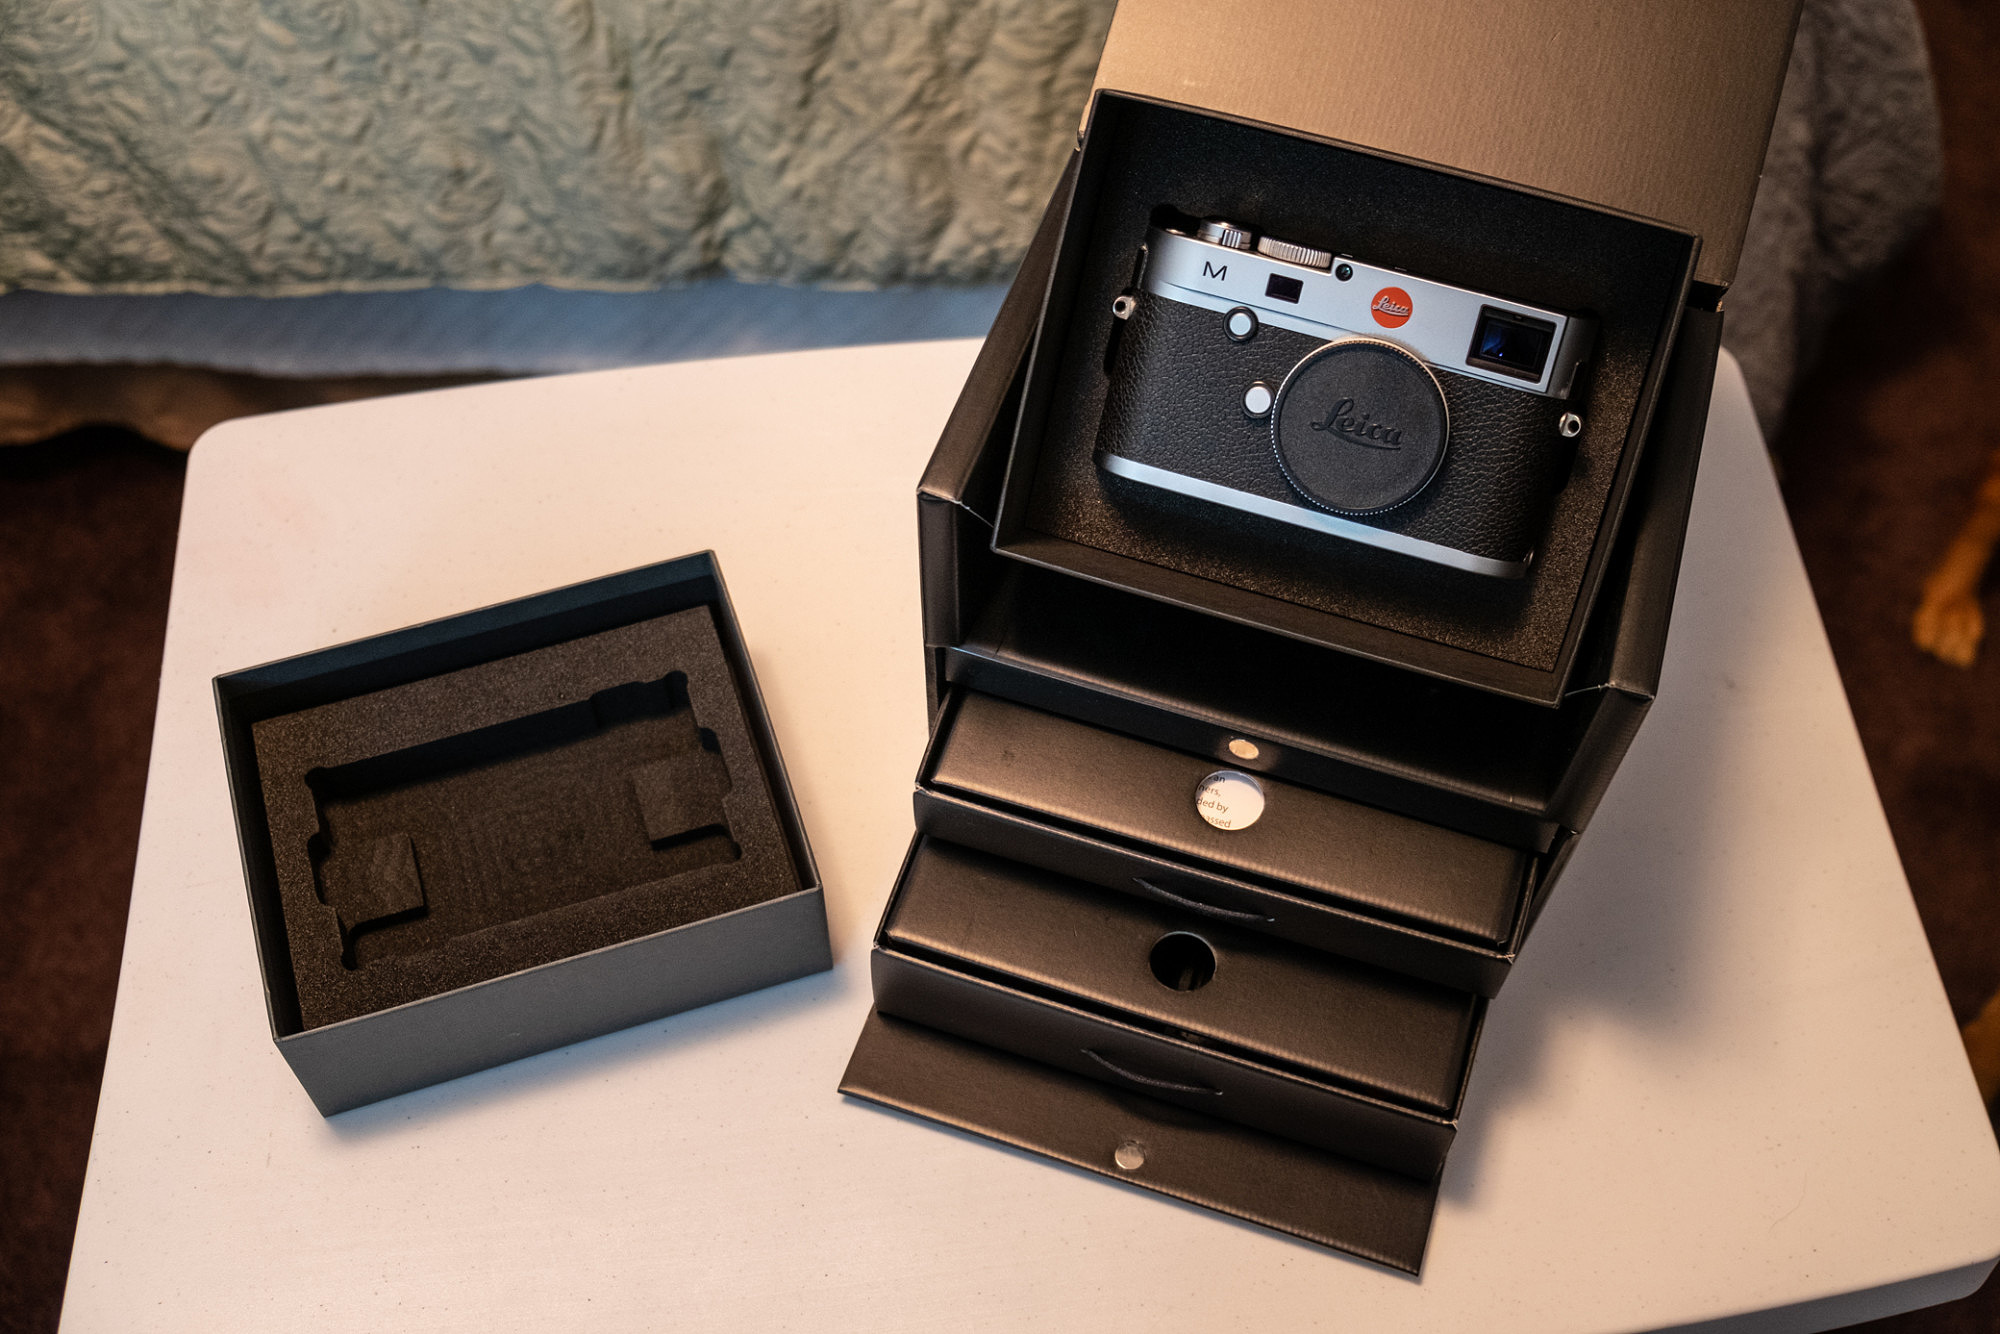 leica-m240-for-sale-14